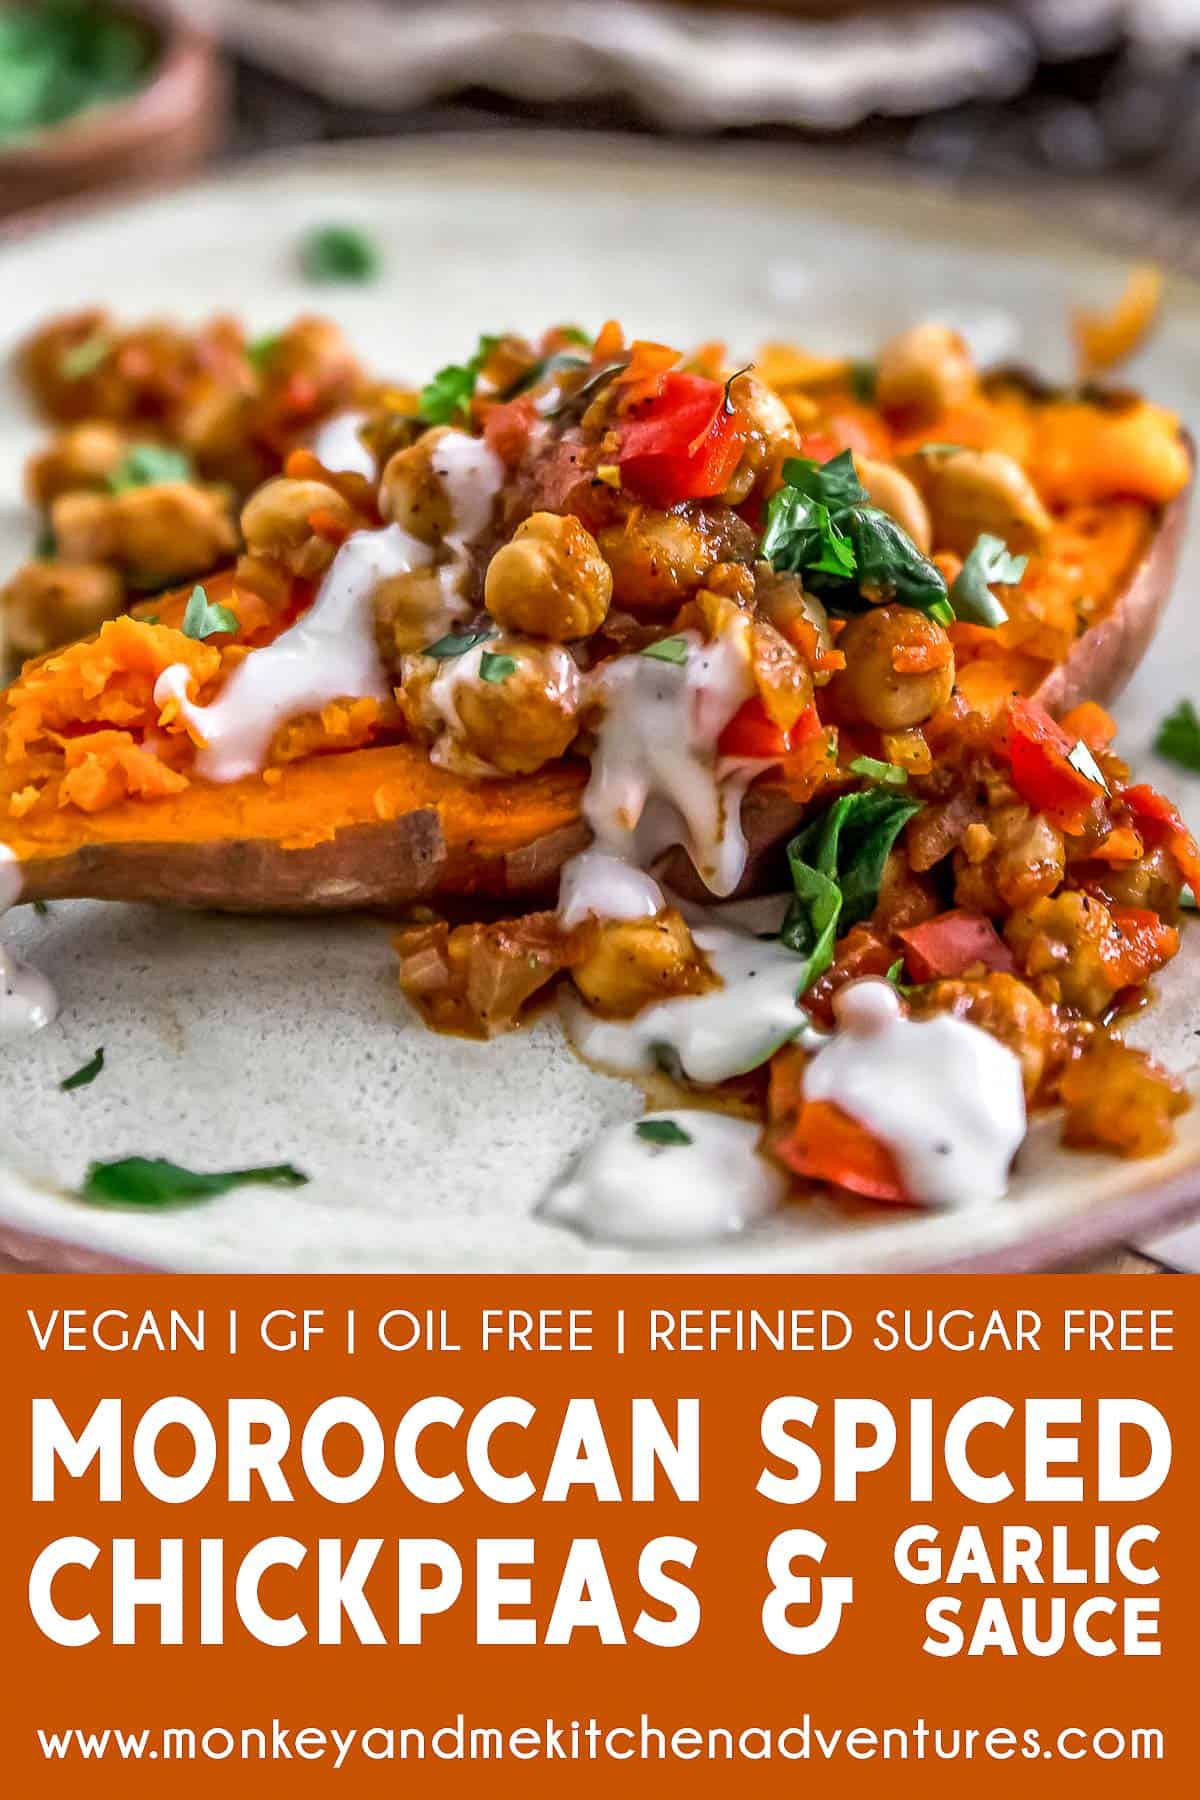 Moroccan Spiced Chickpeas and Garlic Sauce with text description